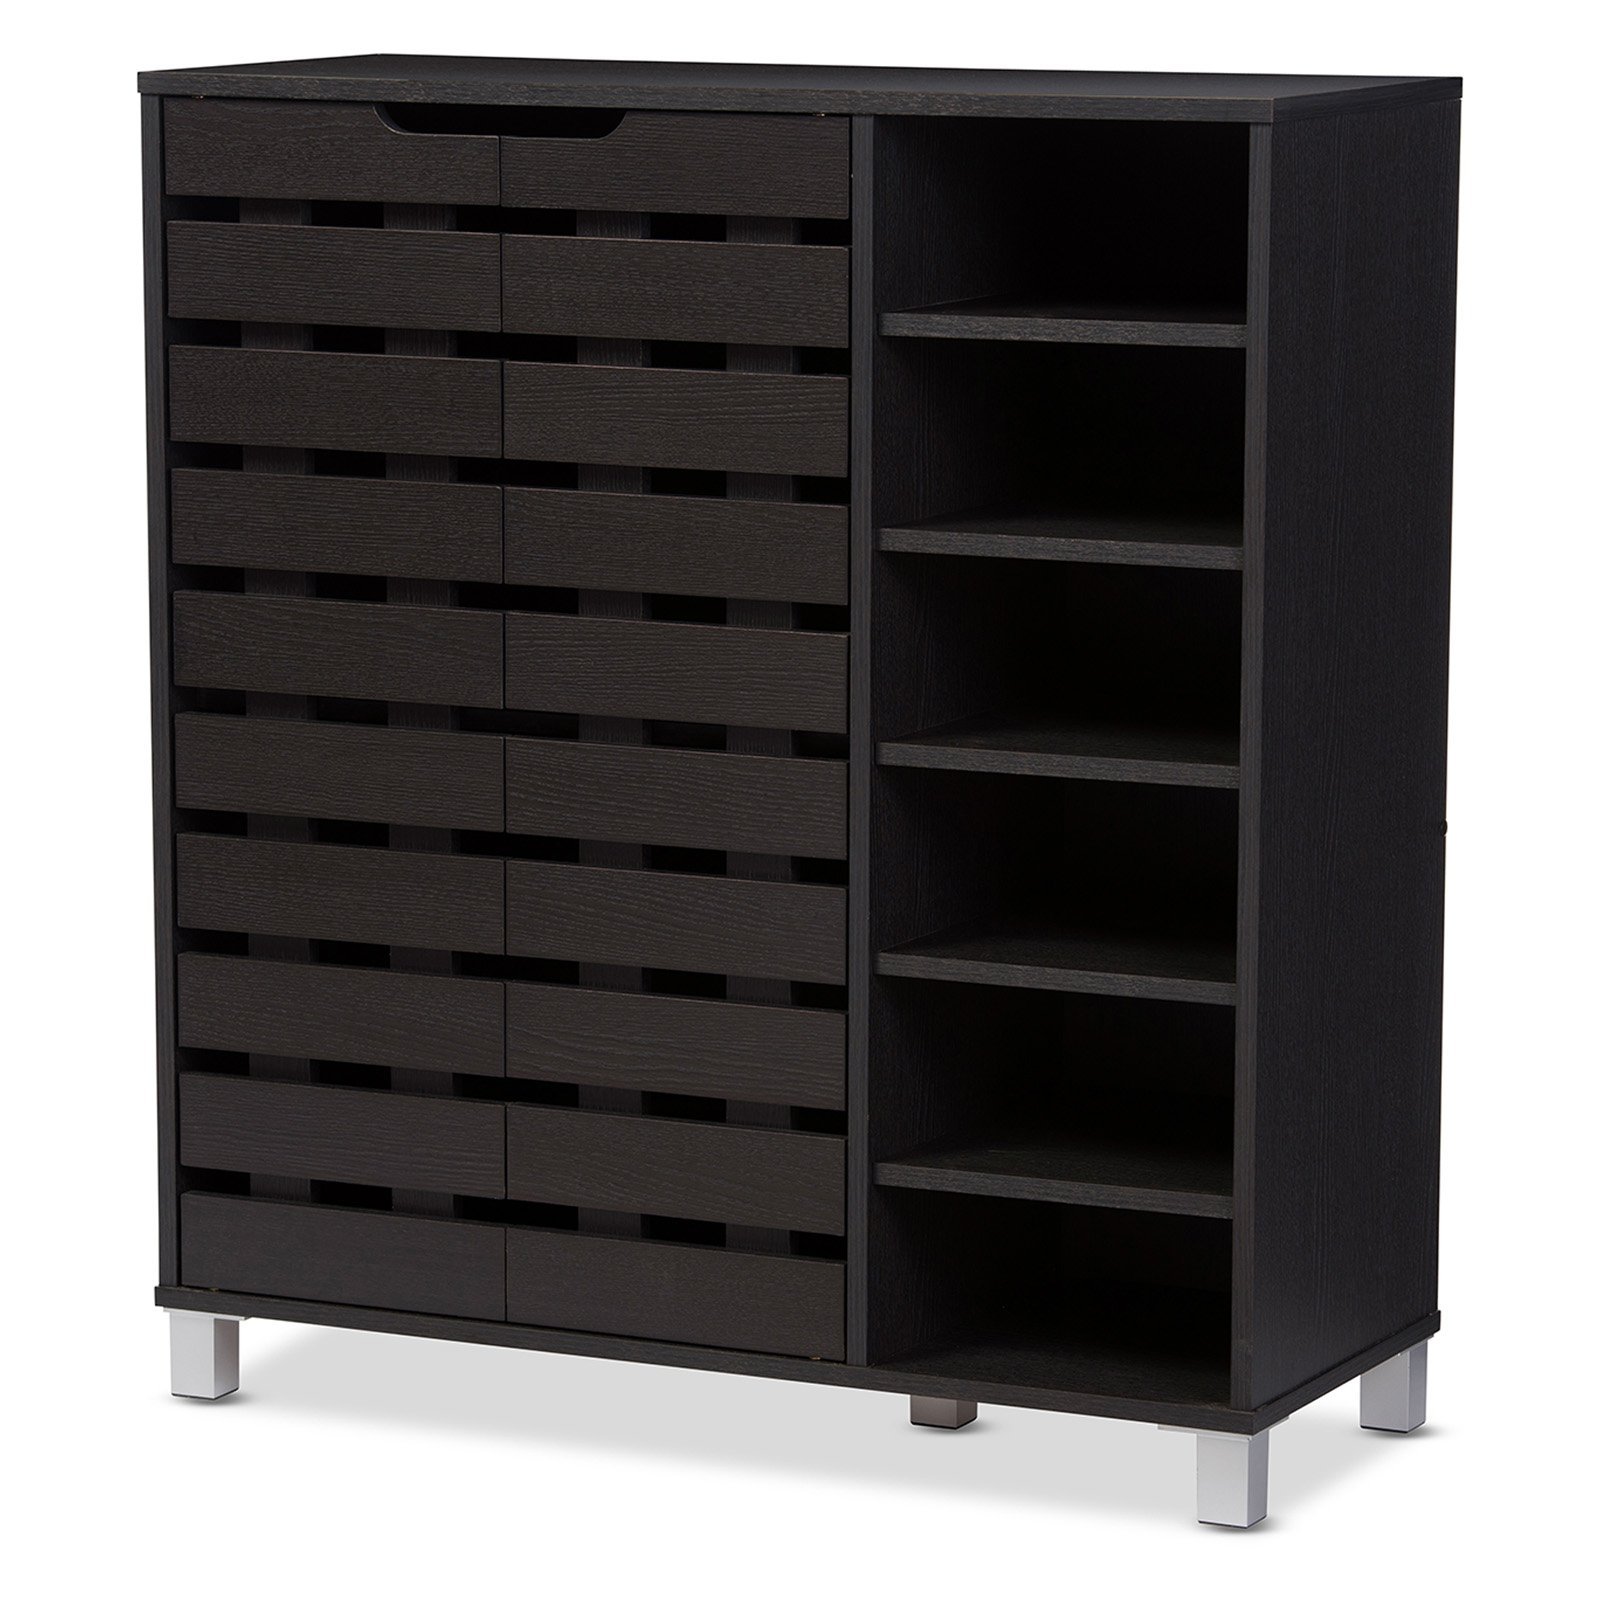 Baxton Studio Shirley 2 Door Shoe Cabinet